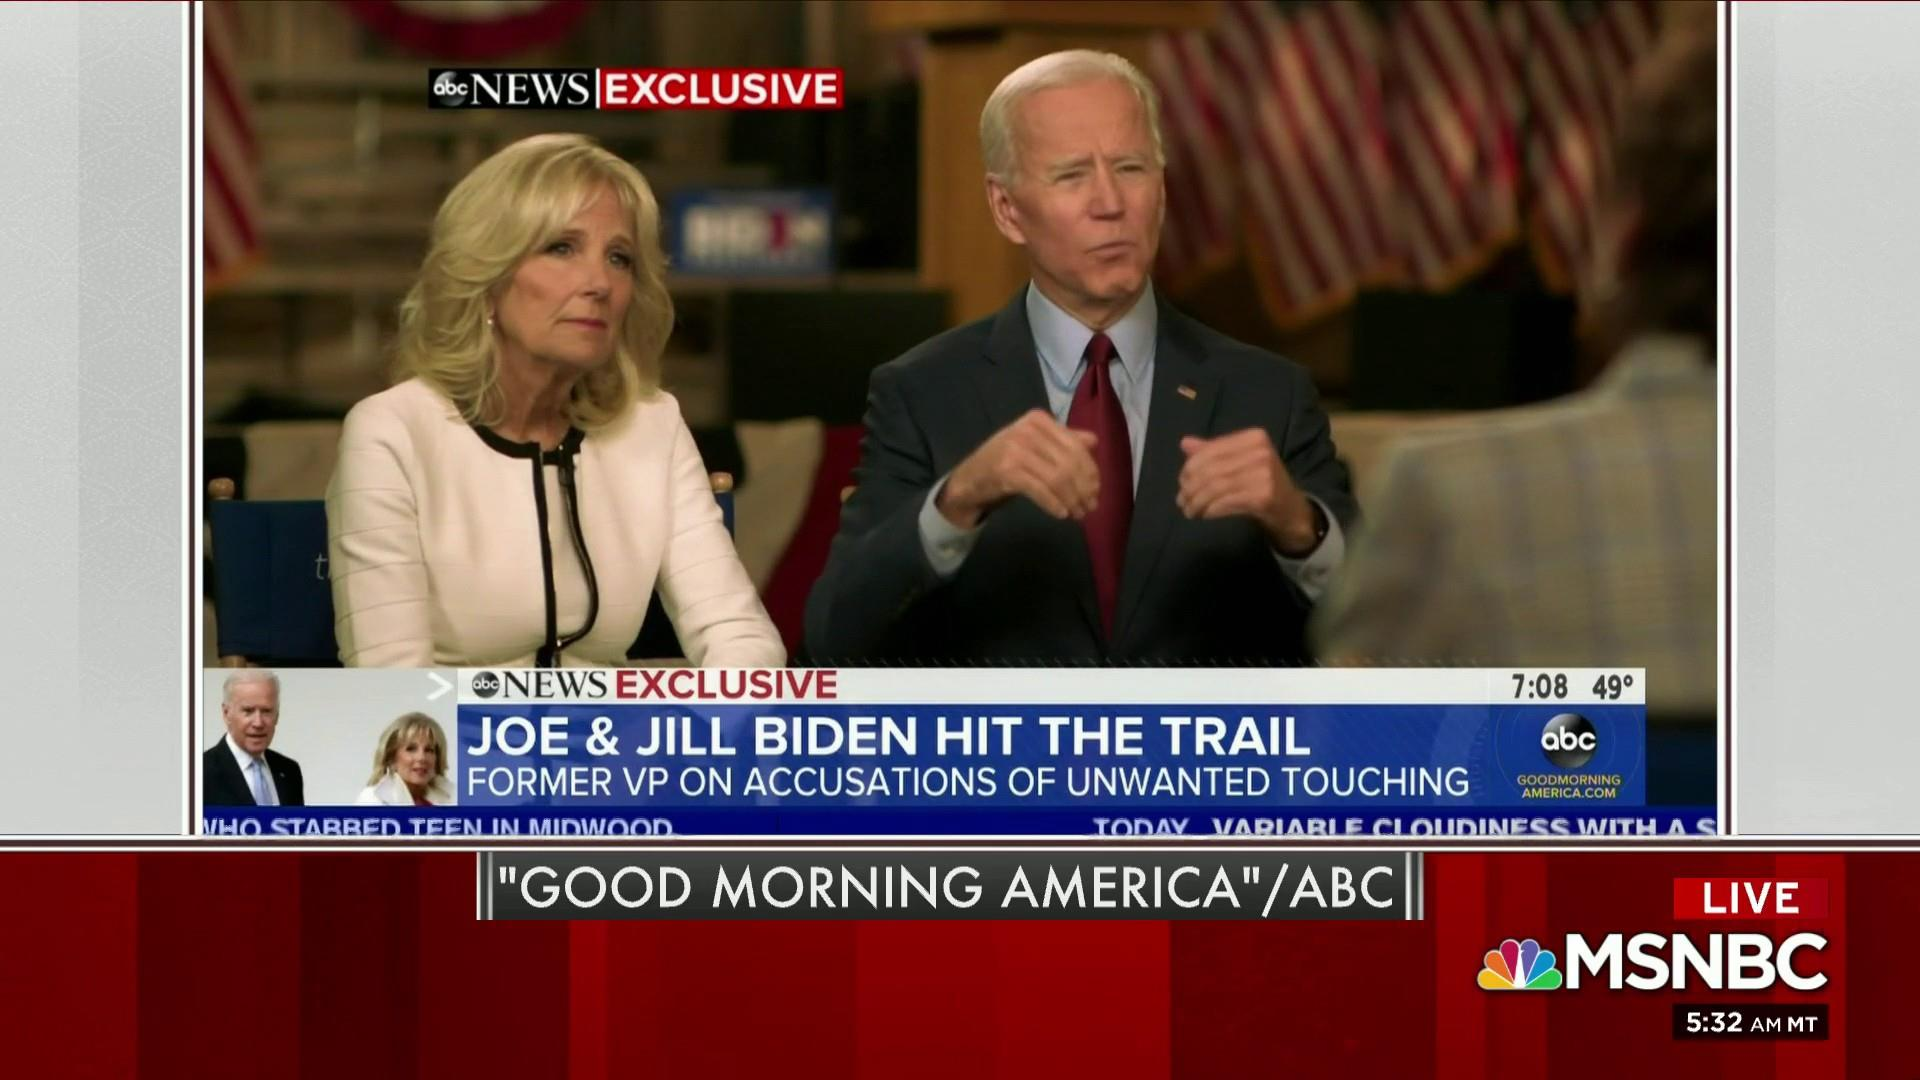 Biden responds to allegations in Tuesday interview